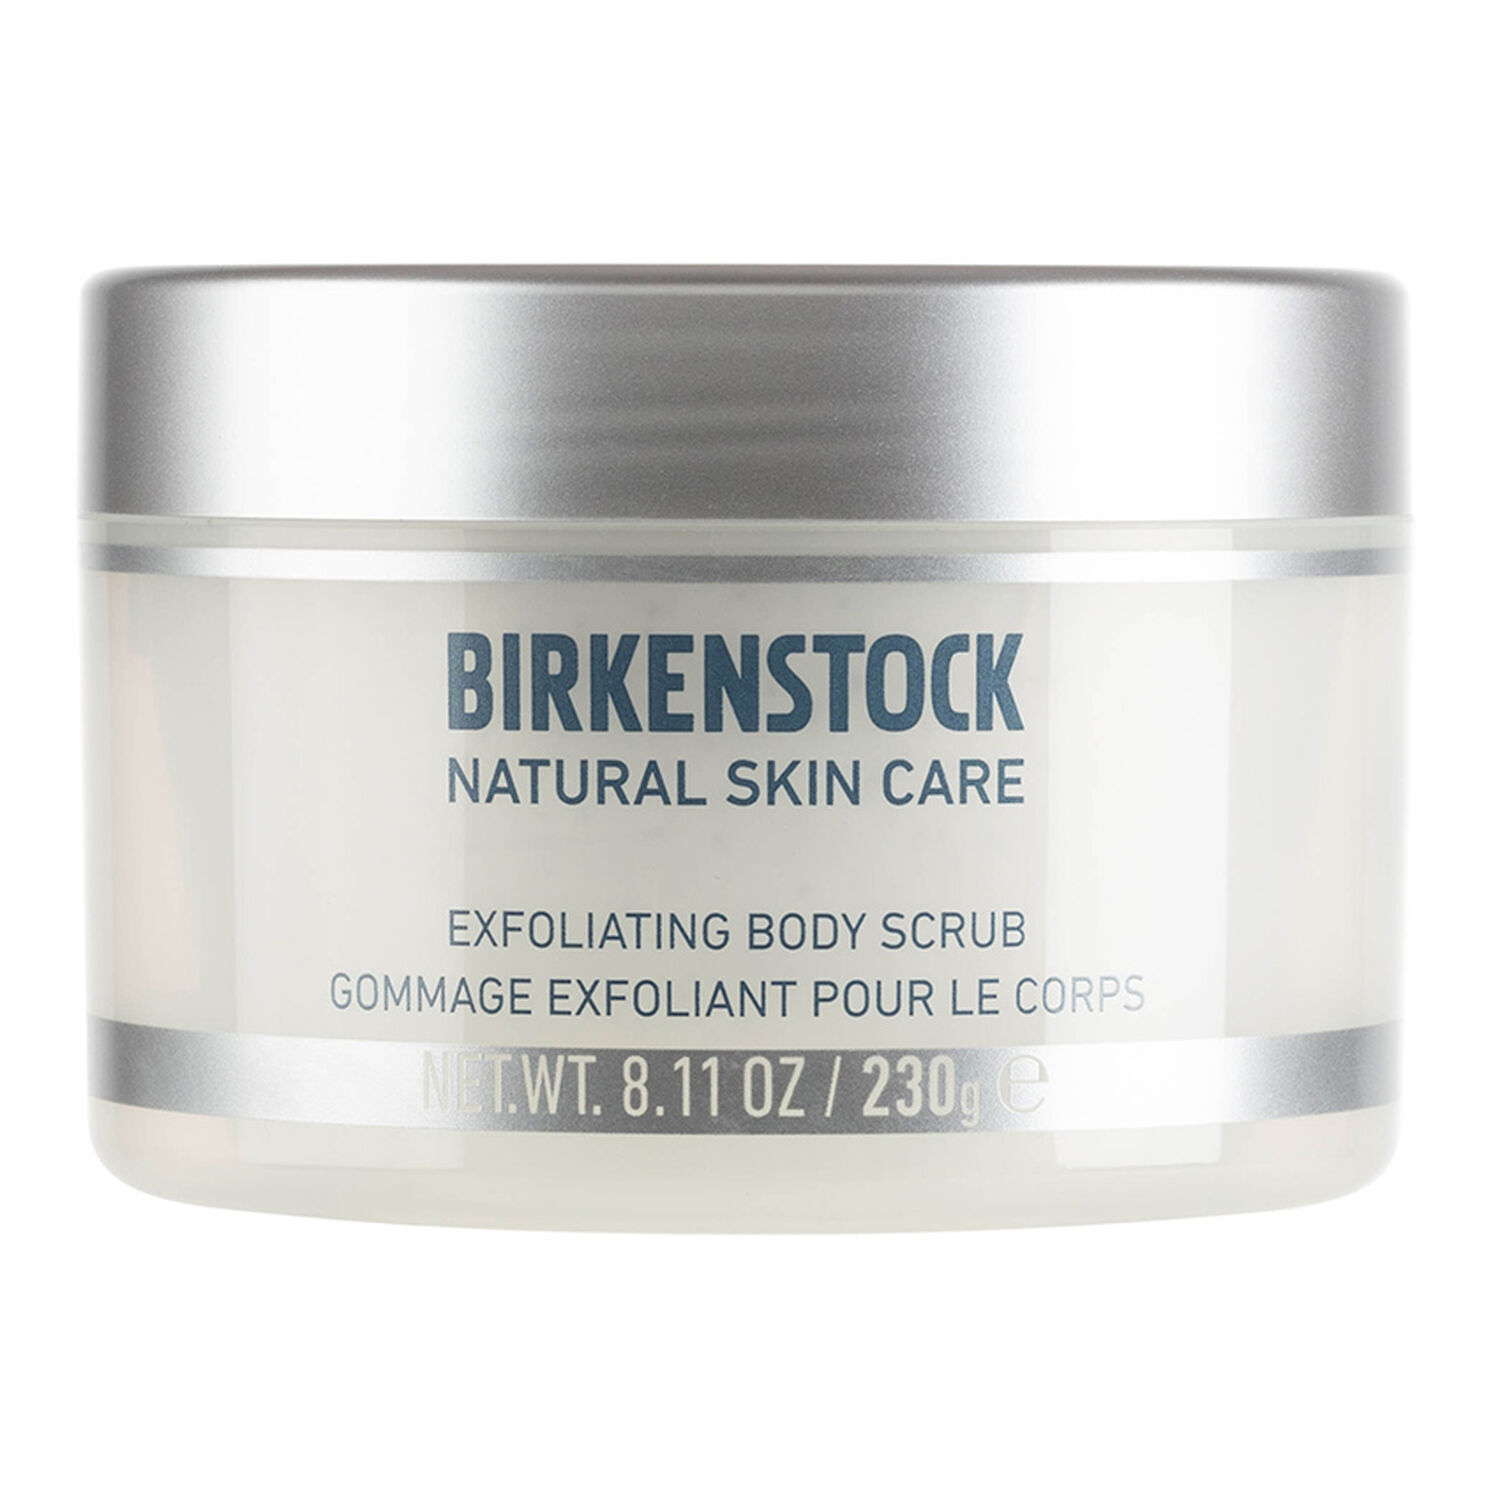 Exfoliating Body Scrub Shop Online At Birkenstock